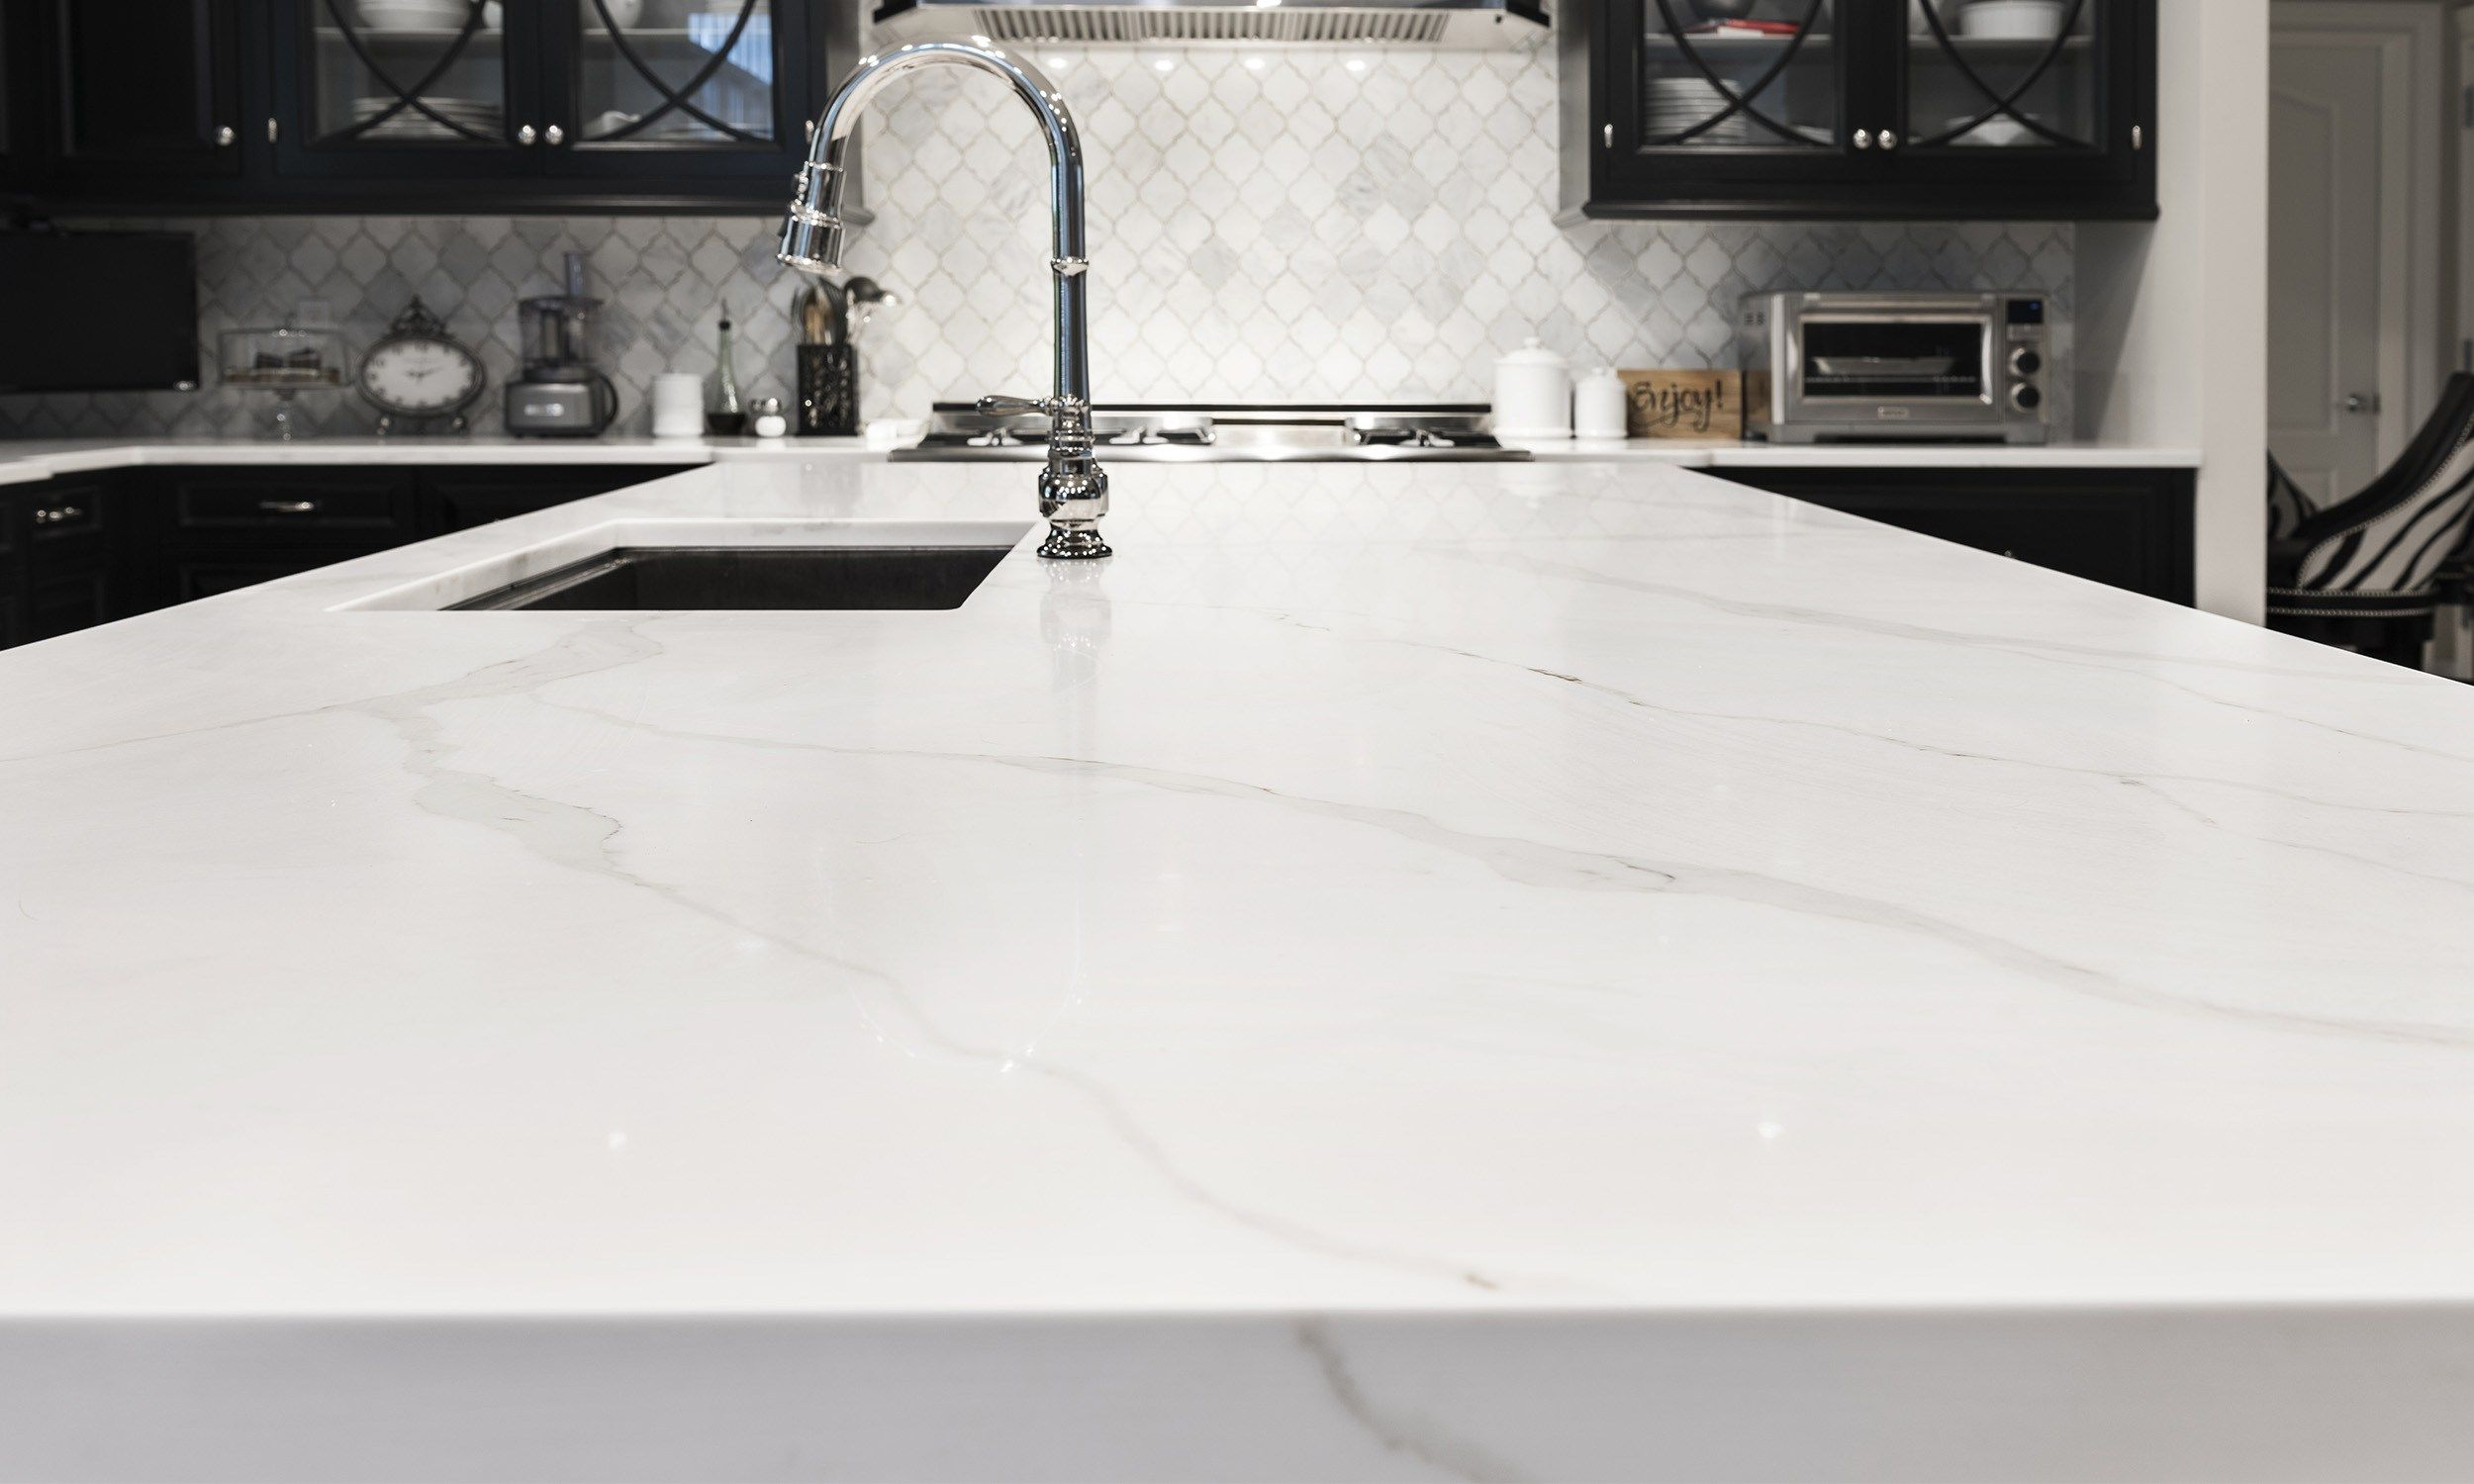 Aurea Stone Calacatta Dinergy Is Now In Stock At Dwyer Marble